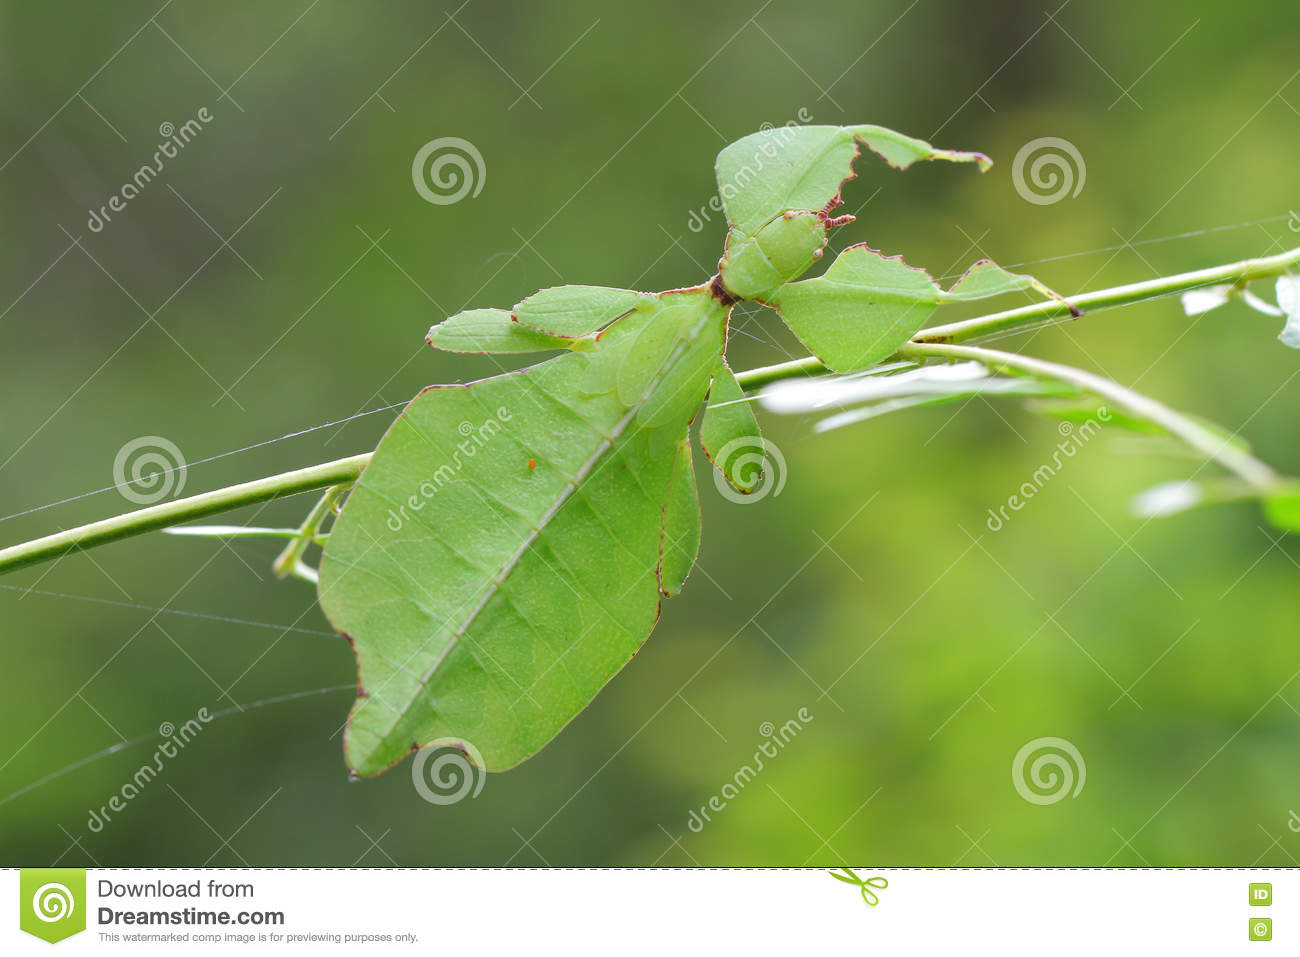 Leaf insect in Thailand.